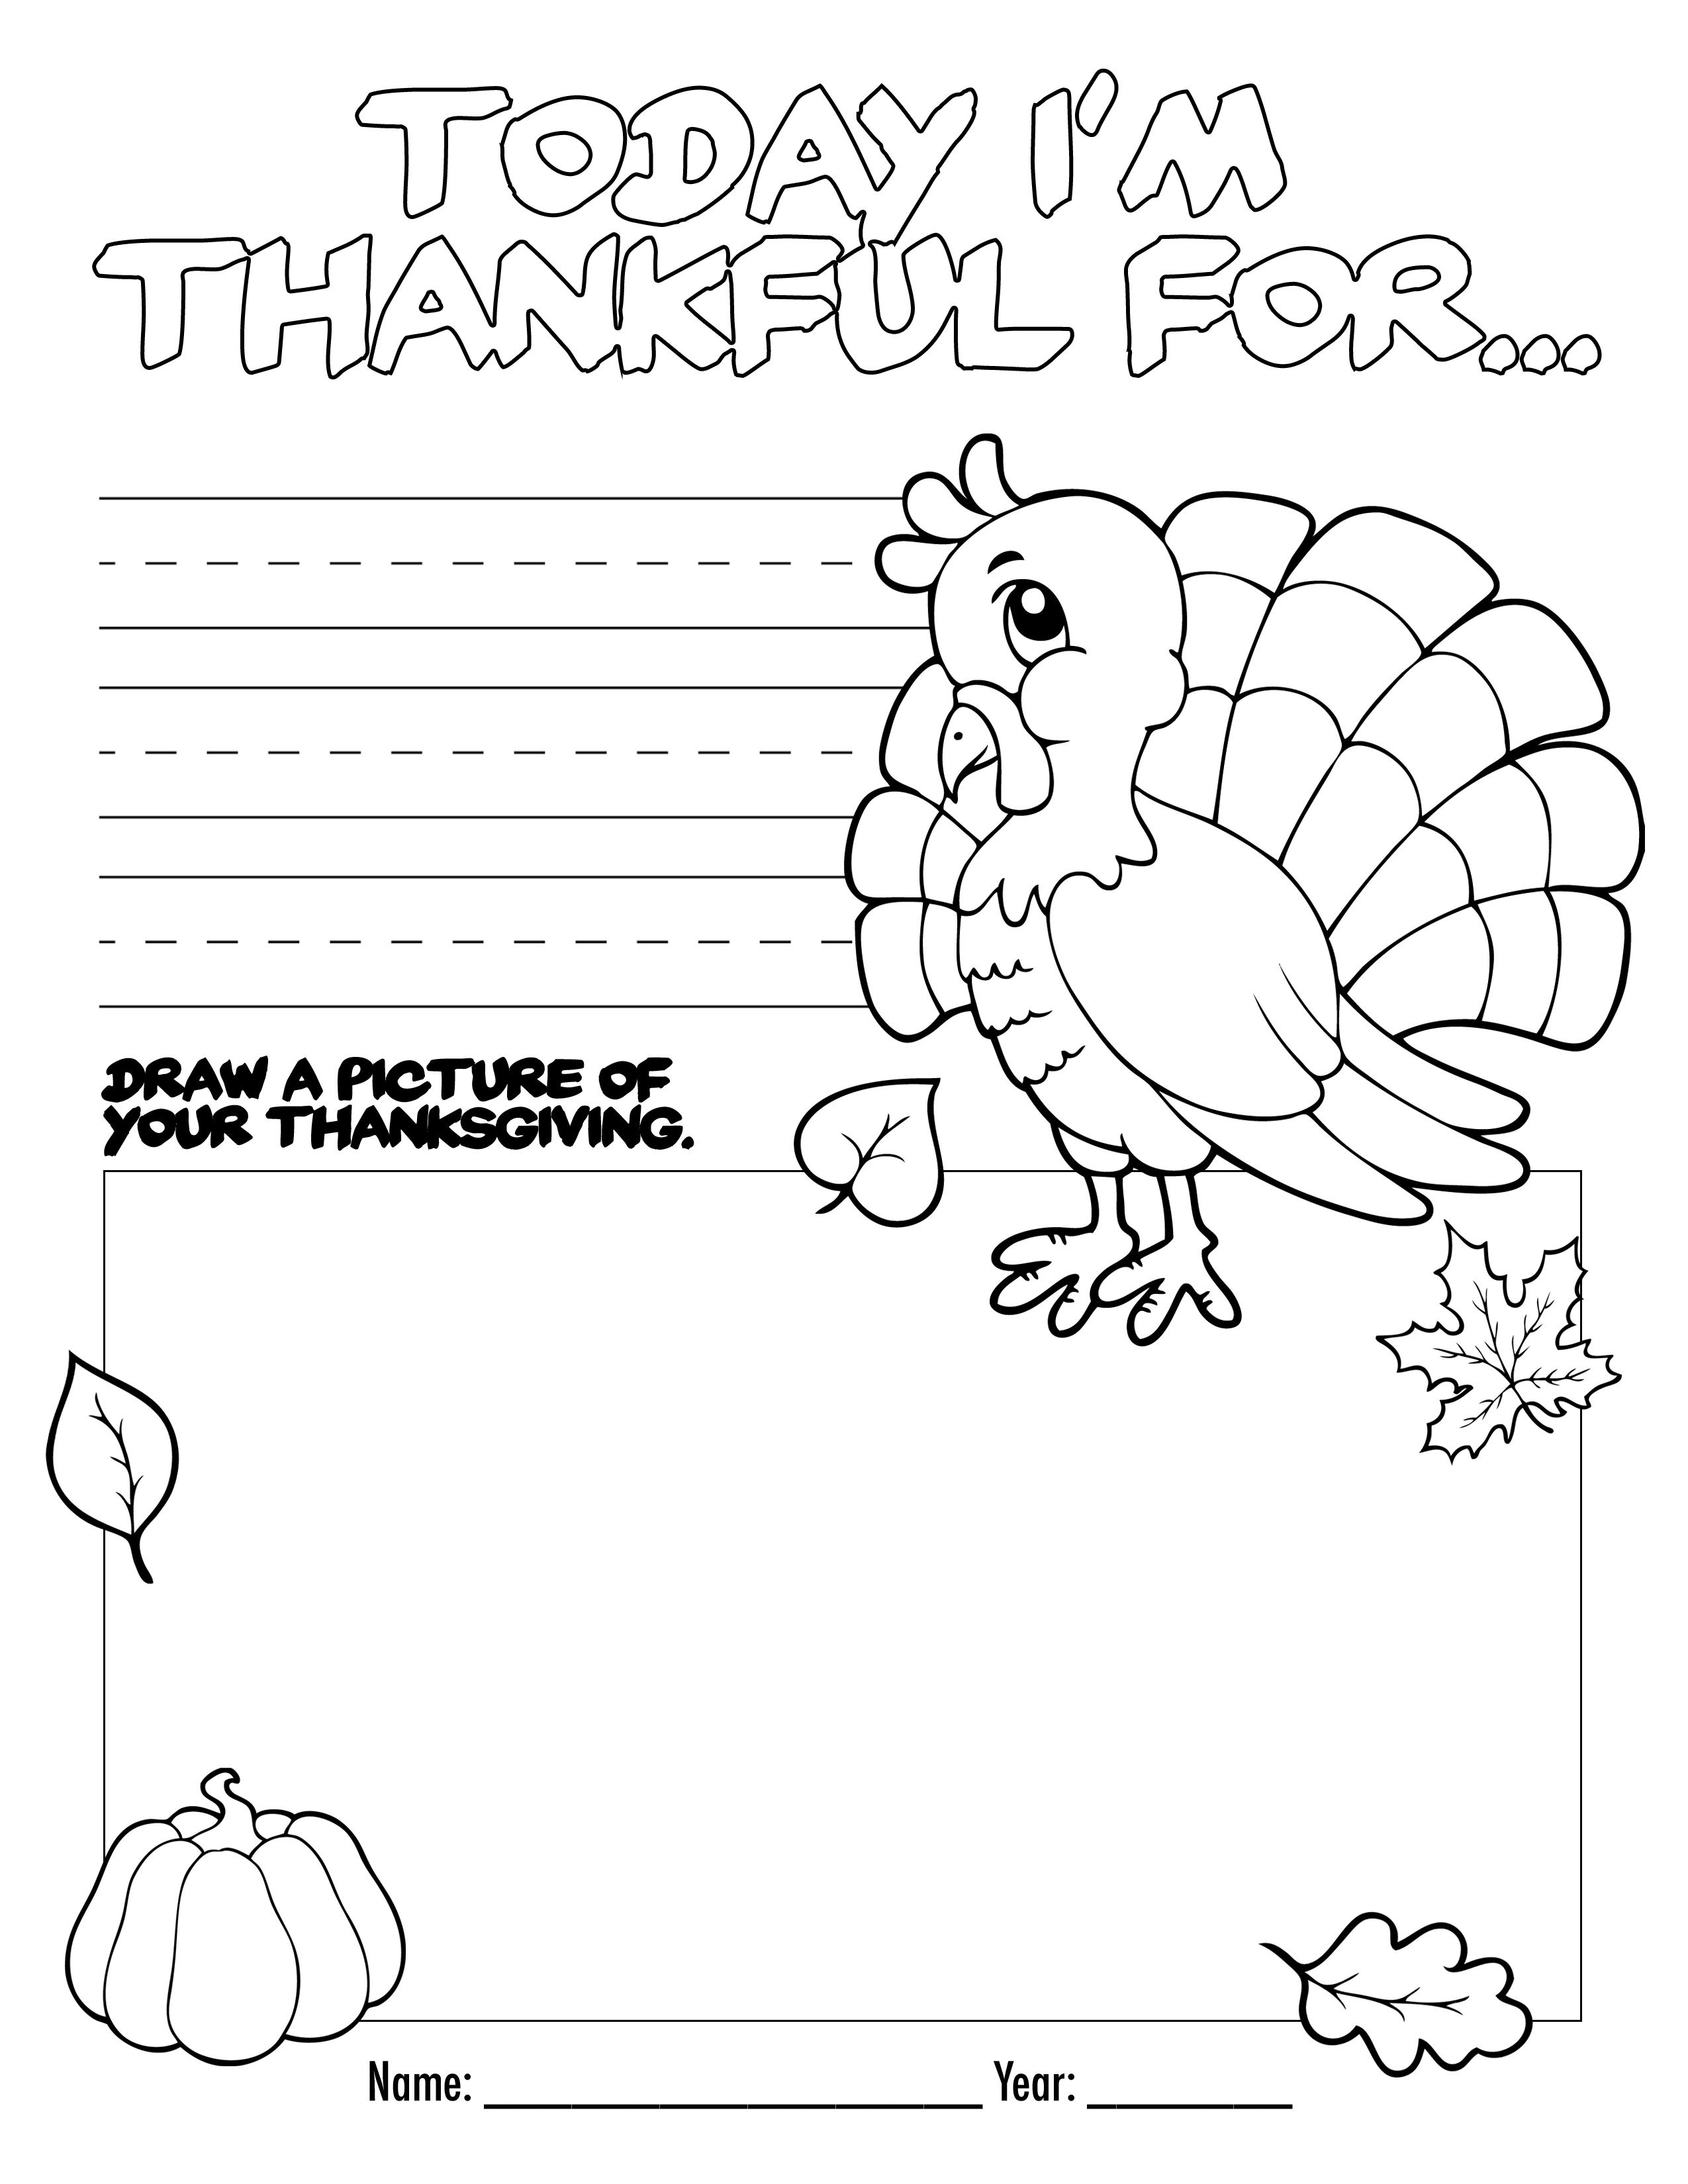 Thanksgiving Coloring Book Free Printable For The Kids! | Bloggers - Free Printable Thanksgiving Crafts For Kids